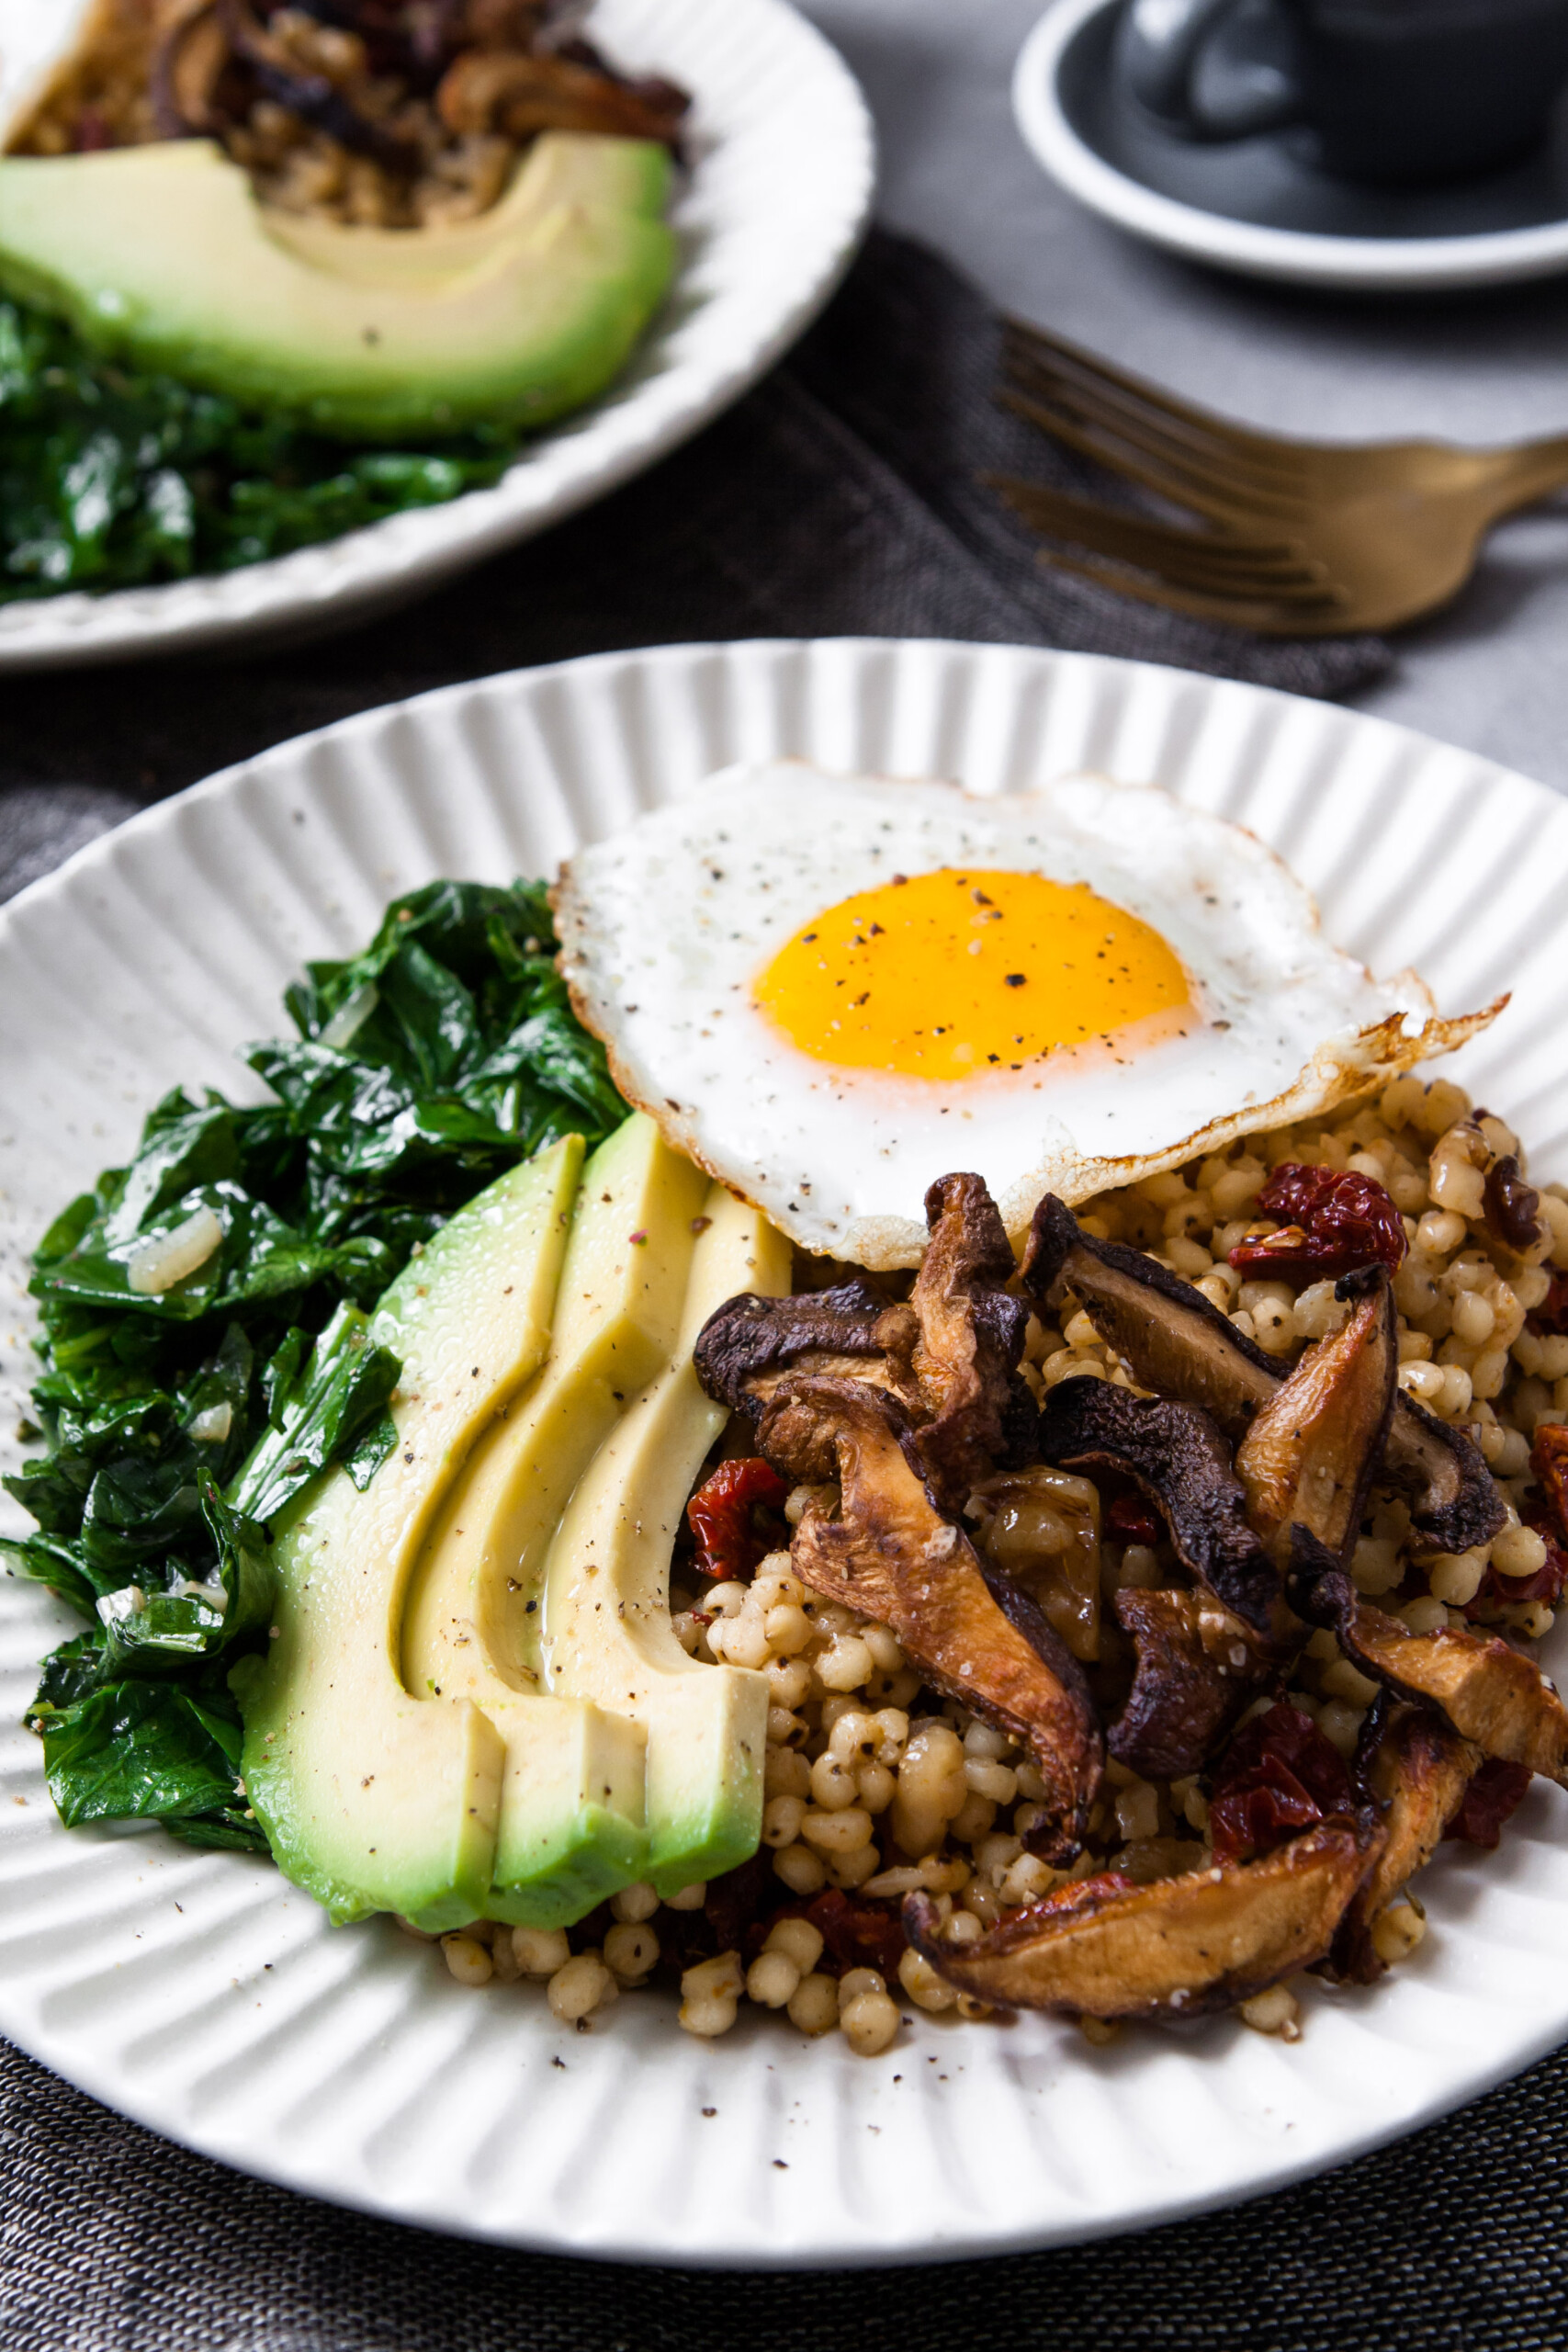 two white bowls filled with grains, sautéed greens, sliced avocado, and topped with a sunny side up egg